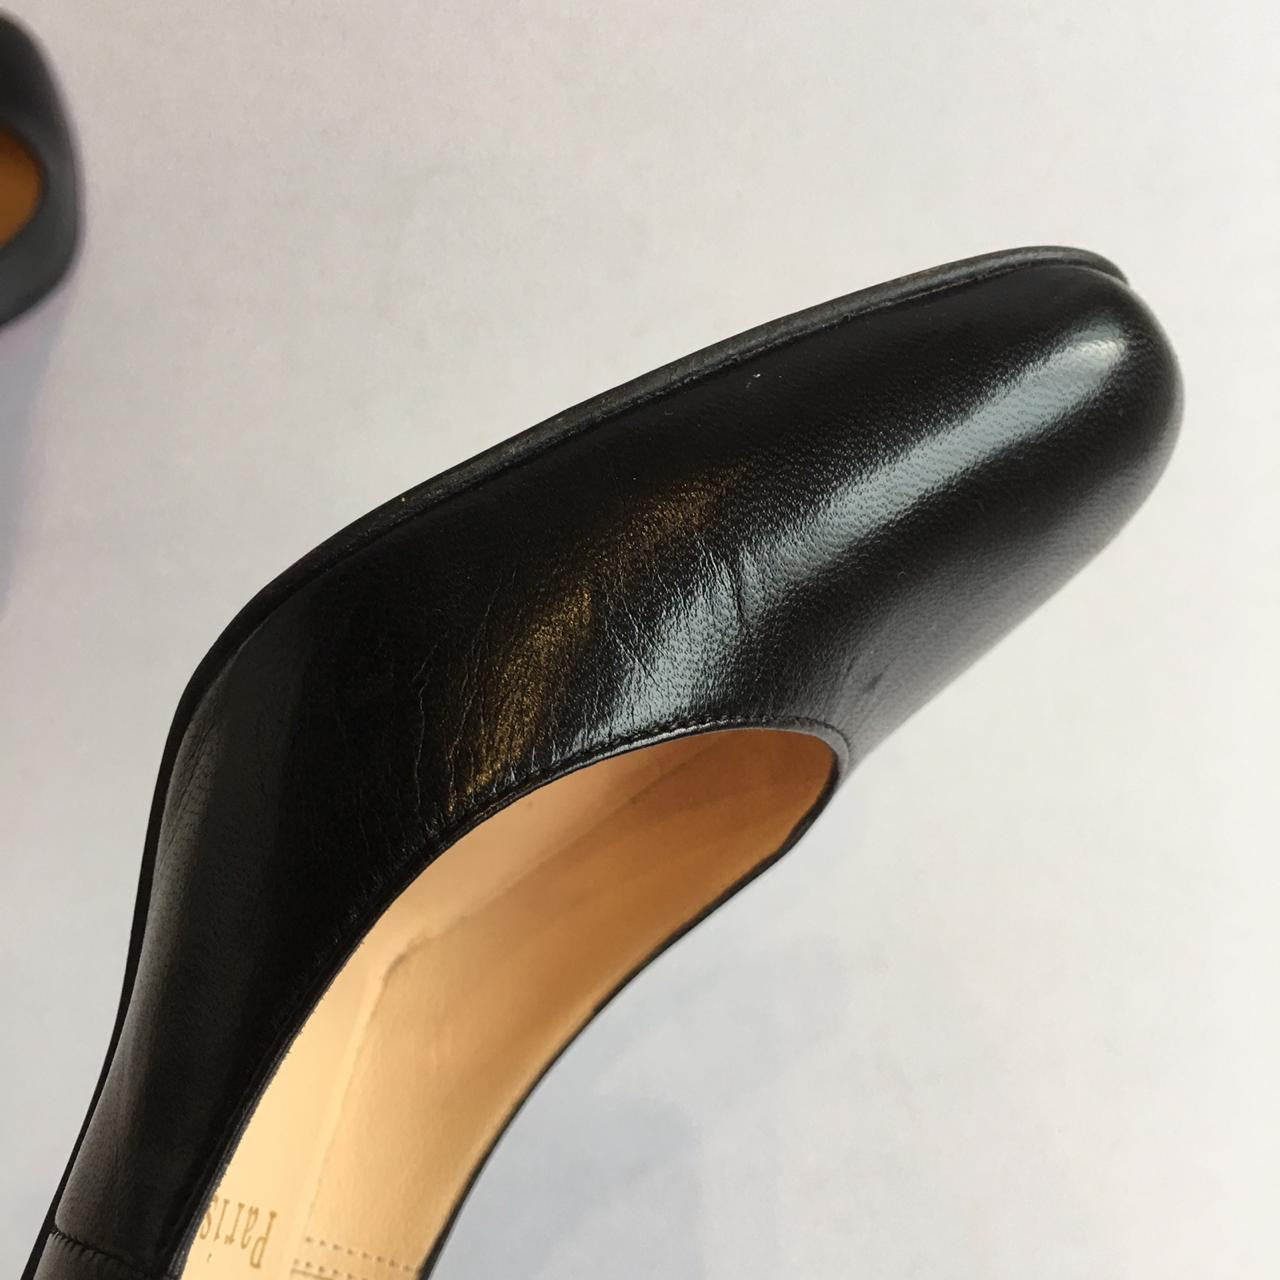 Christian Louboutin Miss Gena Black Kid Leather Heels, 85mm, size 34.5